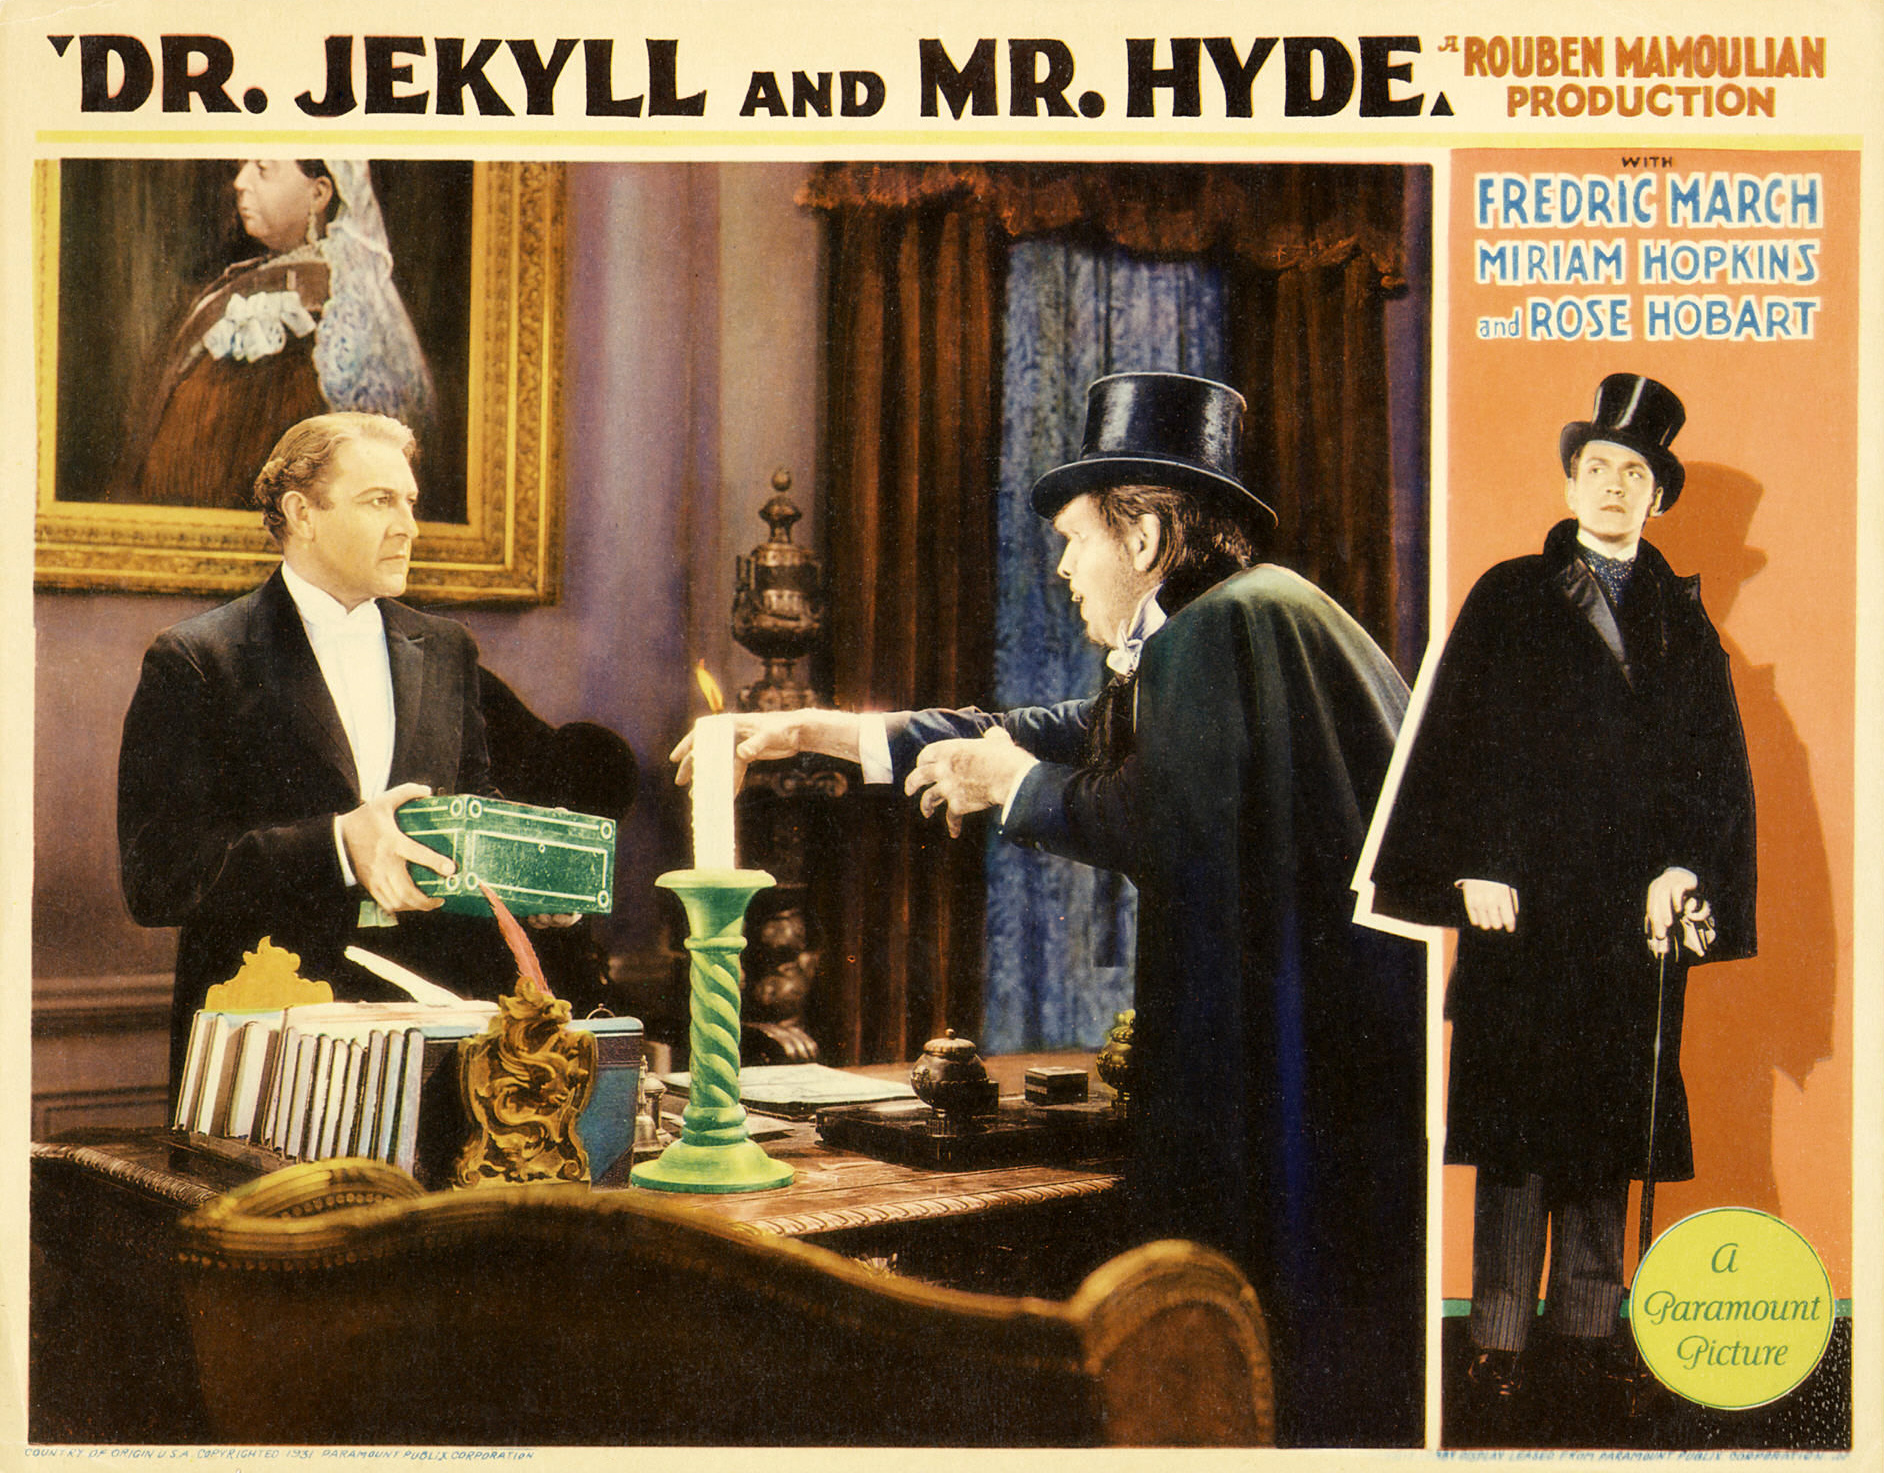 sympathy in dr jekyll and mr Find great deals on ebay for dr jekyll and mr hyde in books on antiquarian and collectibles shop with confidence.